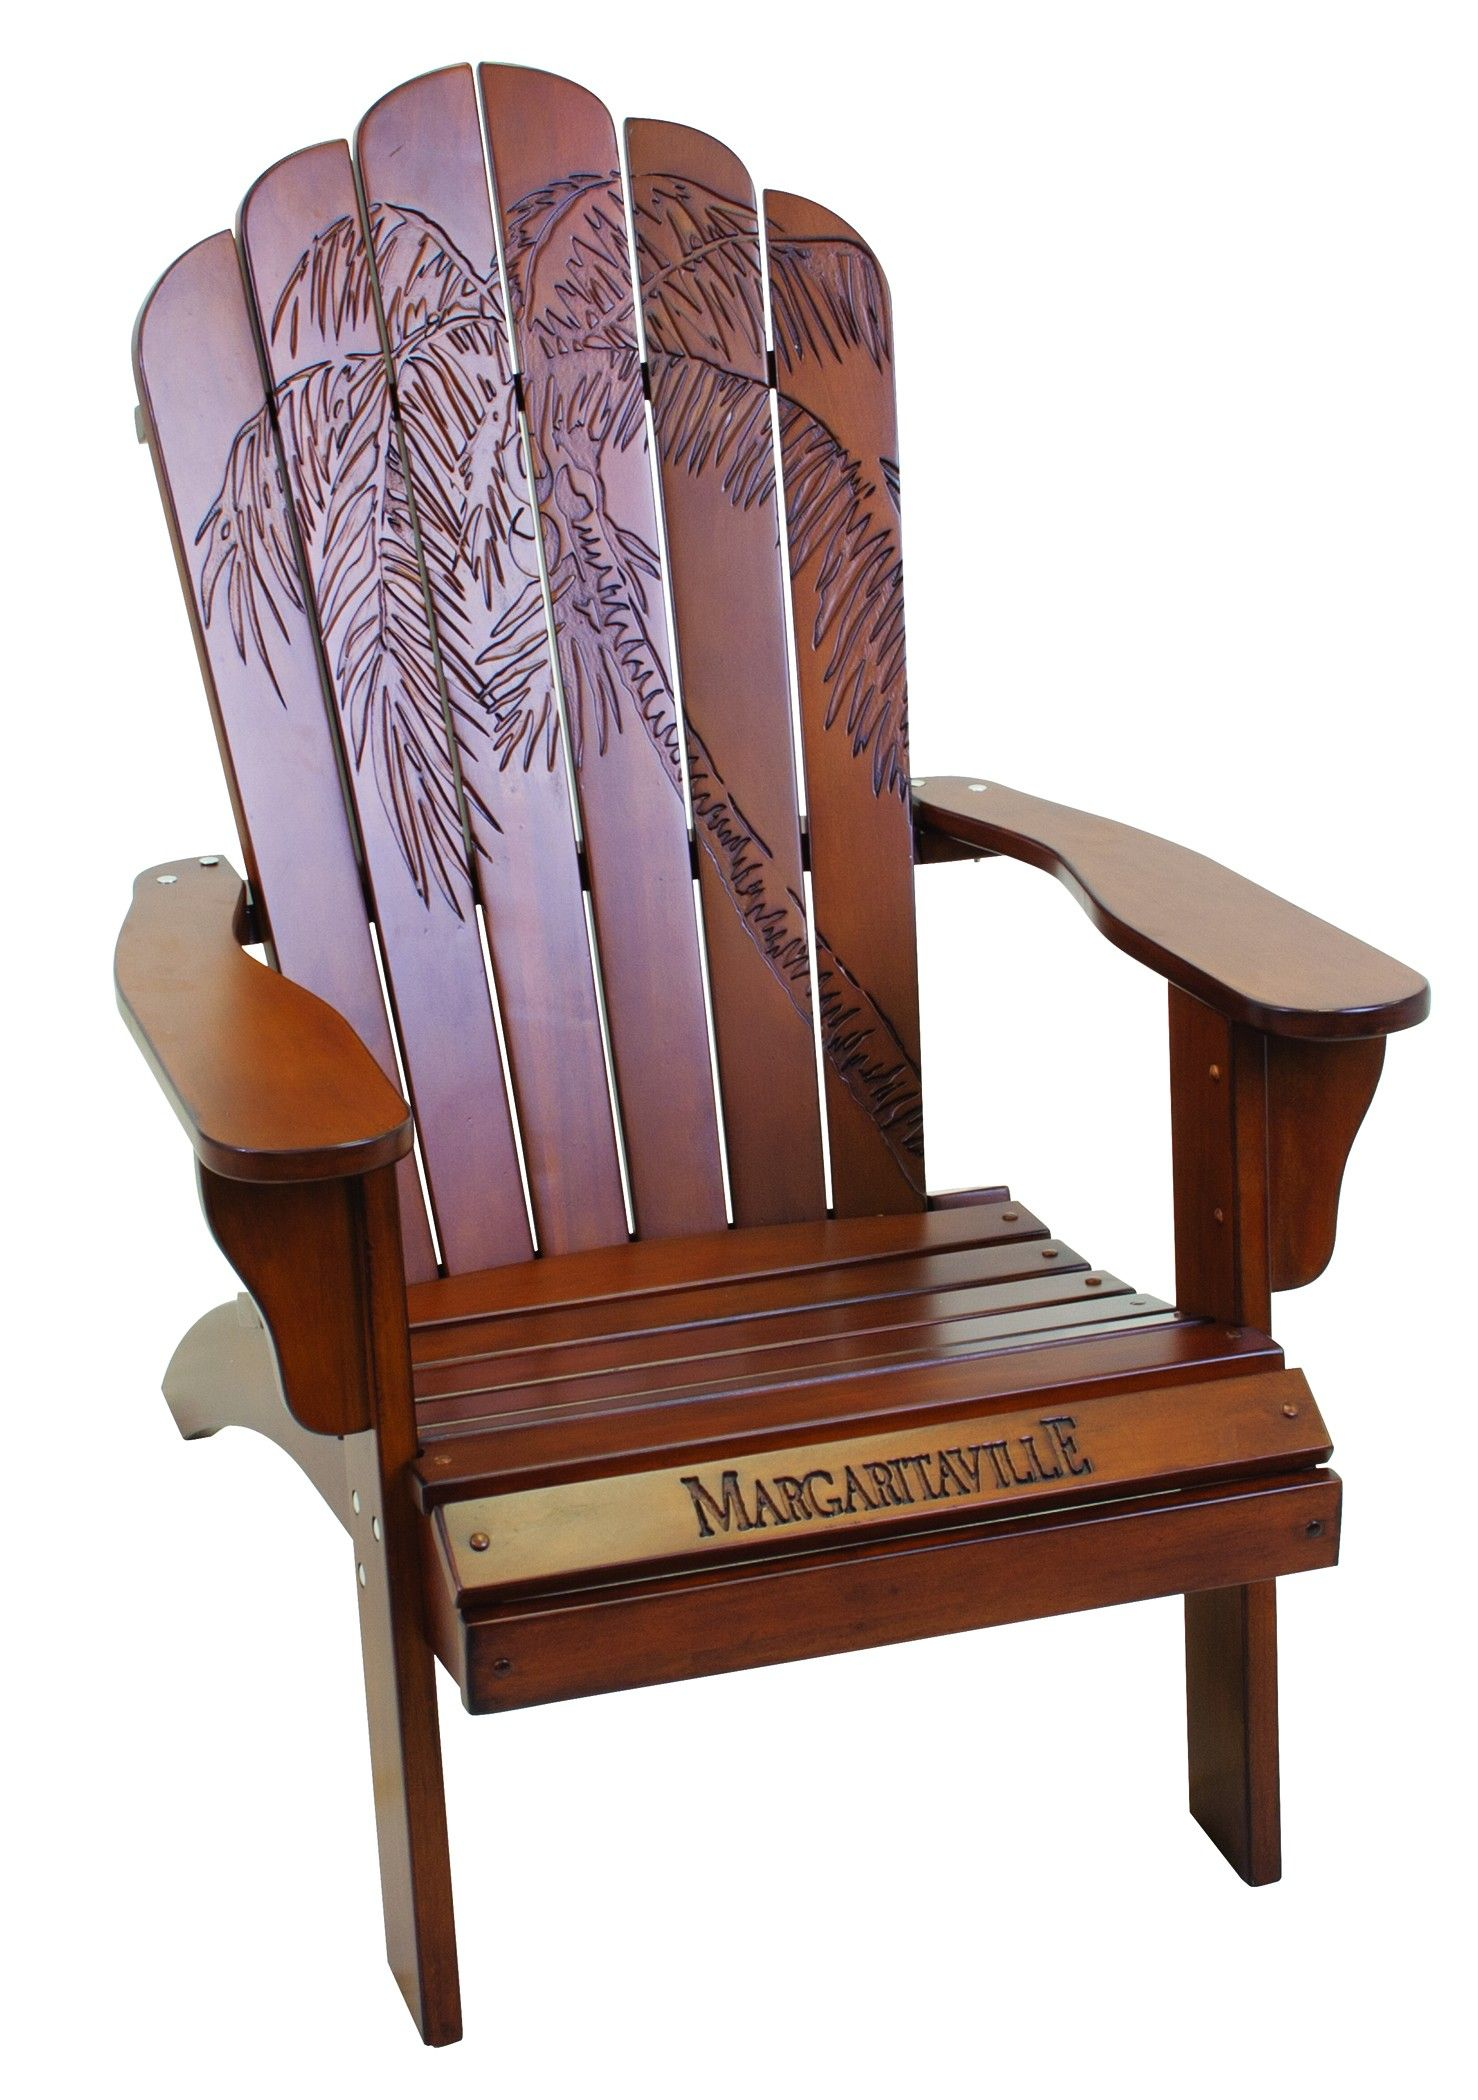 Best Margaritaville Adirondack Chair For Sale Margaritaville 640 x 480